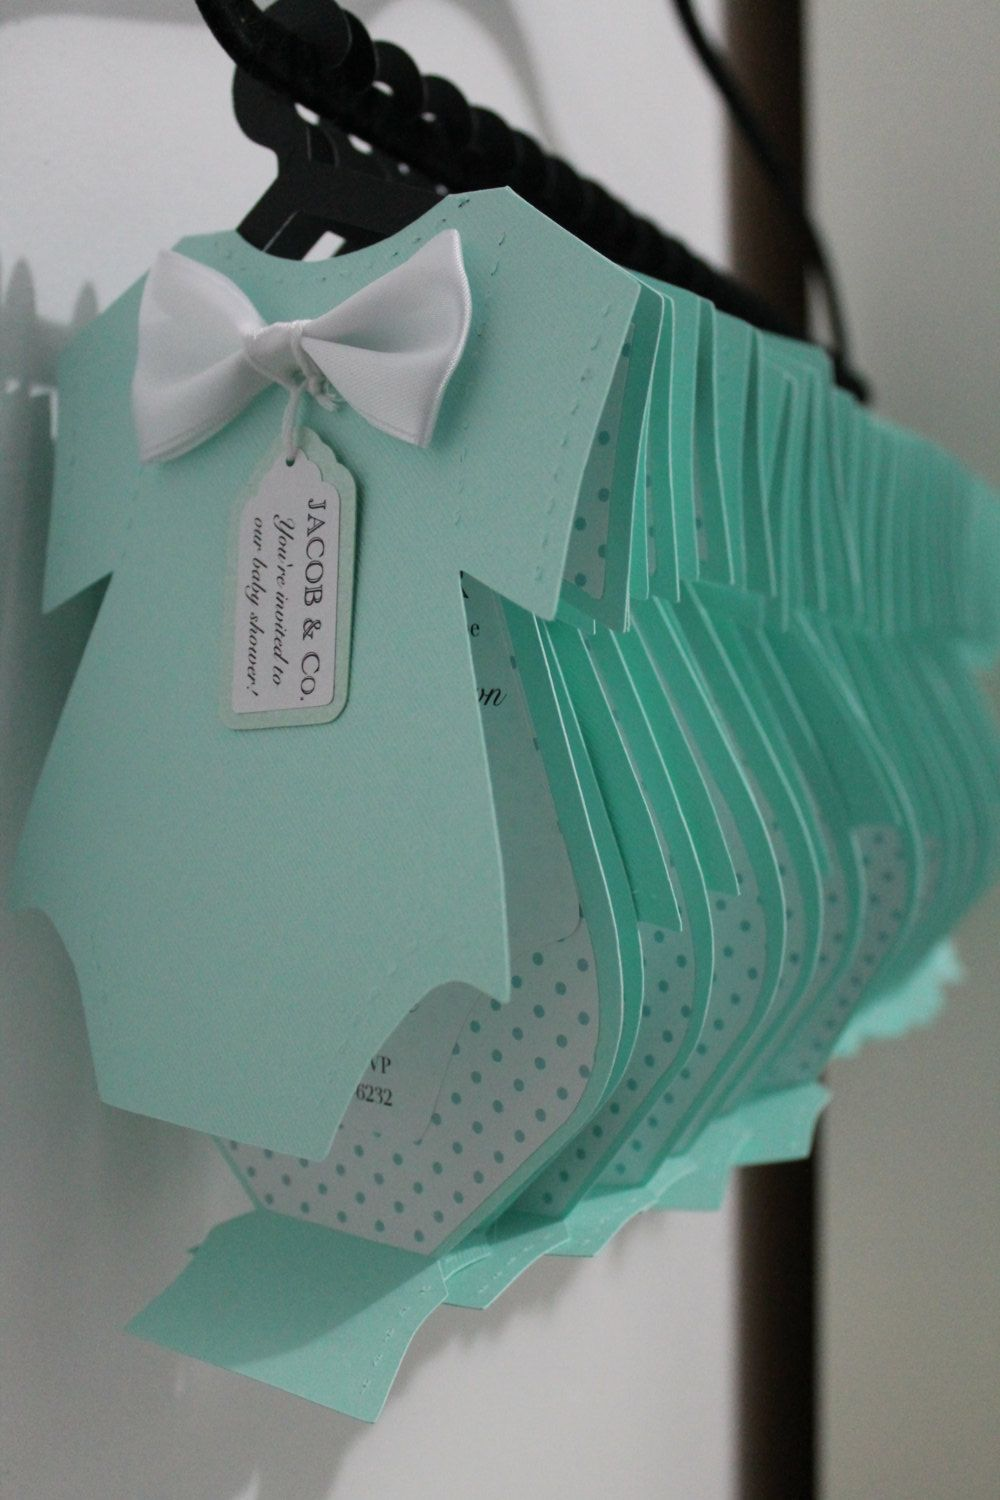 8 Piece Onesie Invitation Complete With Hanger And Tags